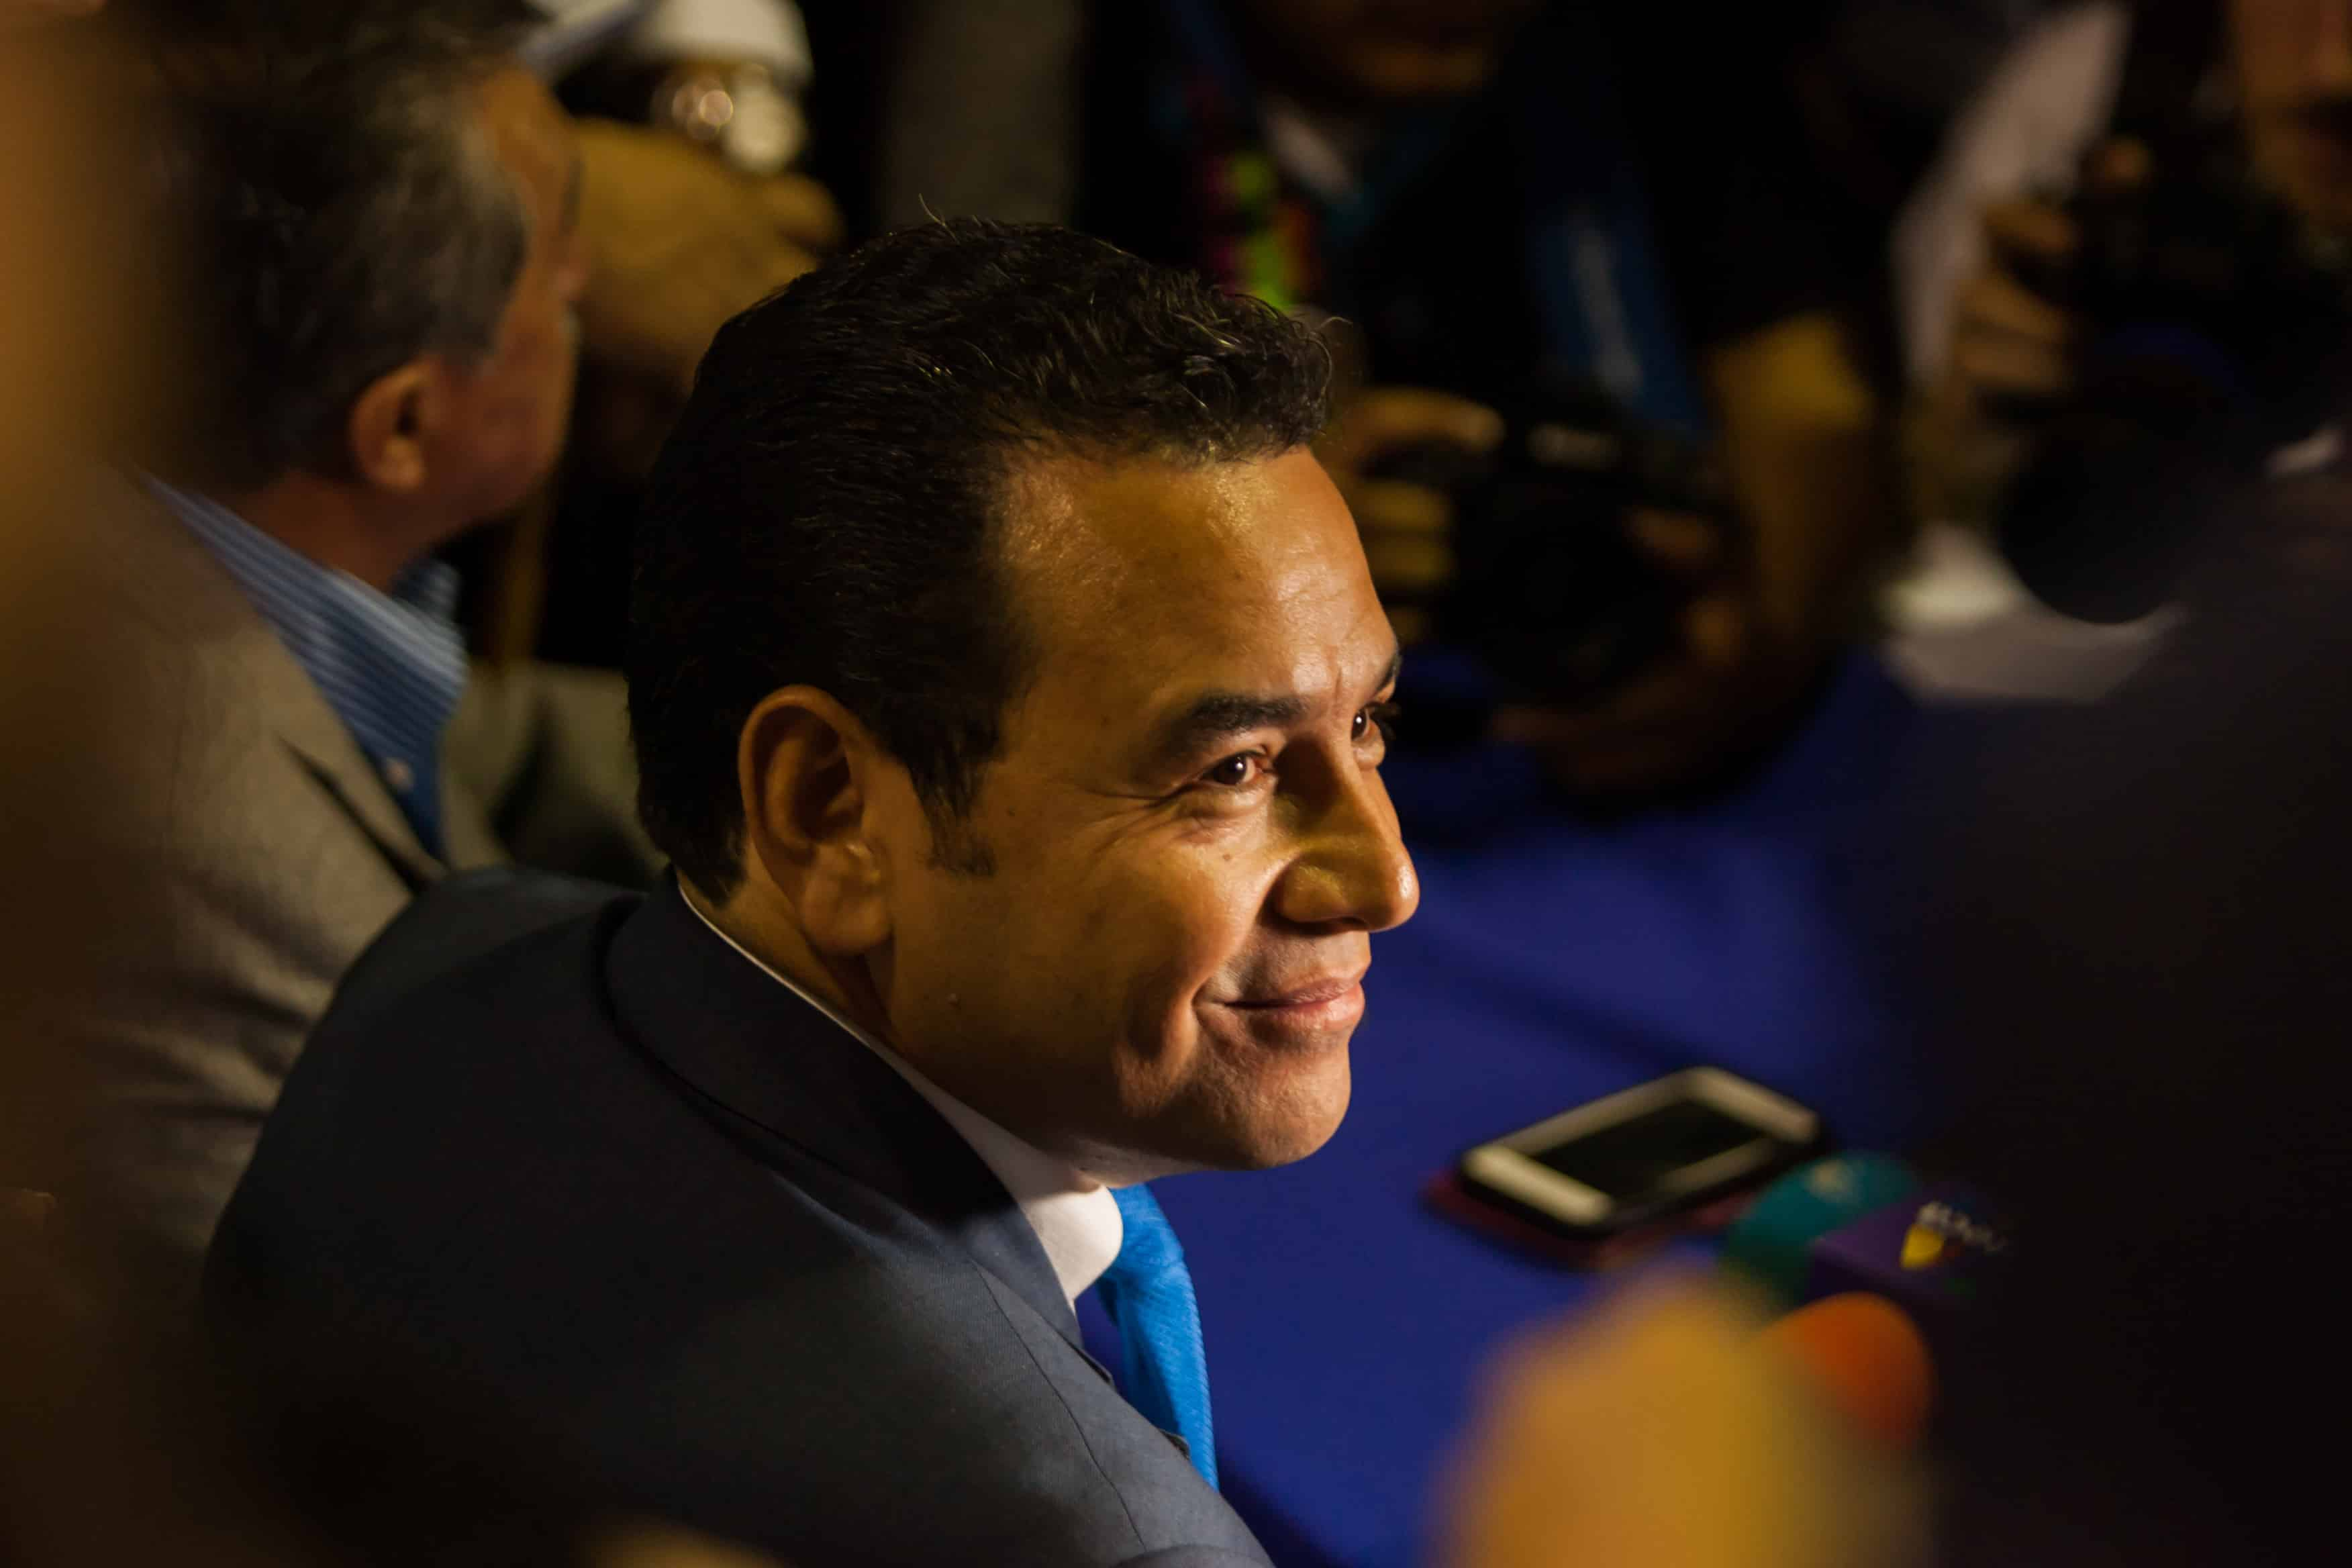 Comedian Jimmy Morales led Sunday's vote tally in Guatemala, but failed to reach a high enough percentage of votes to avoid a runoff in October.